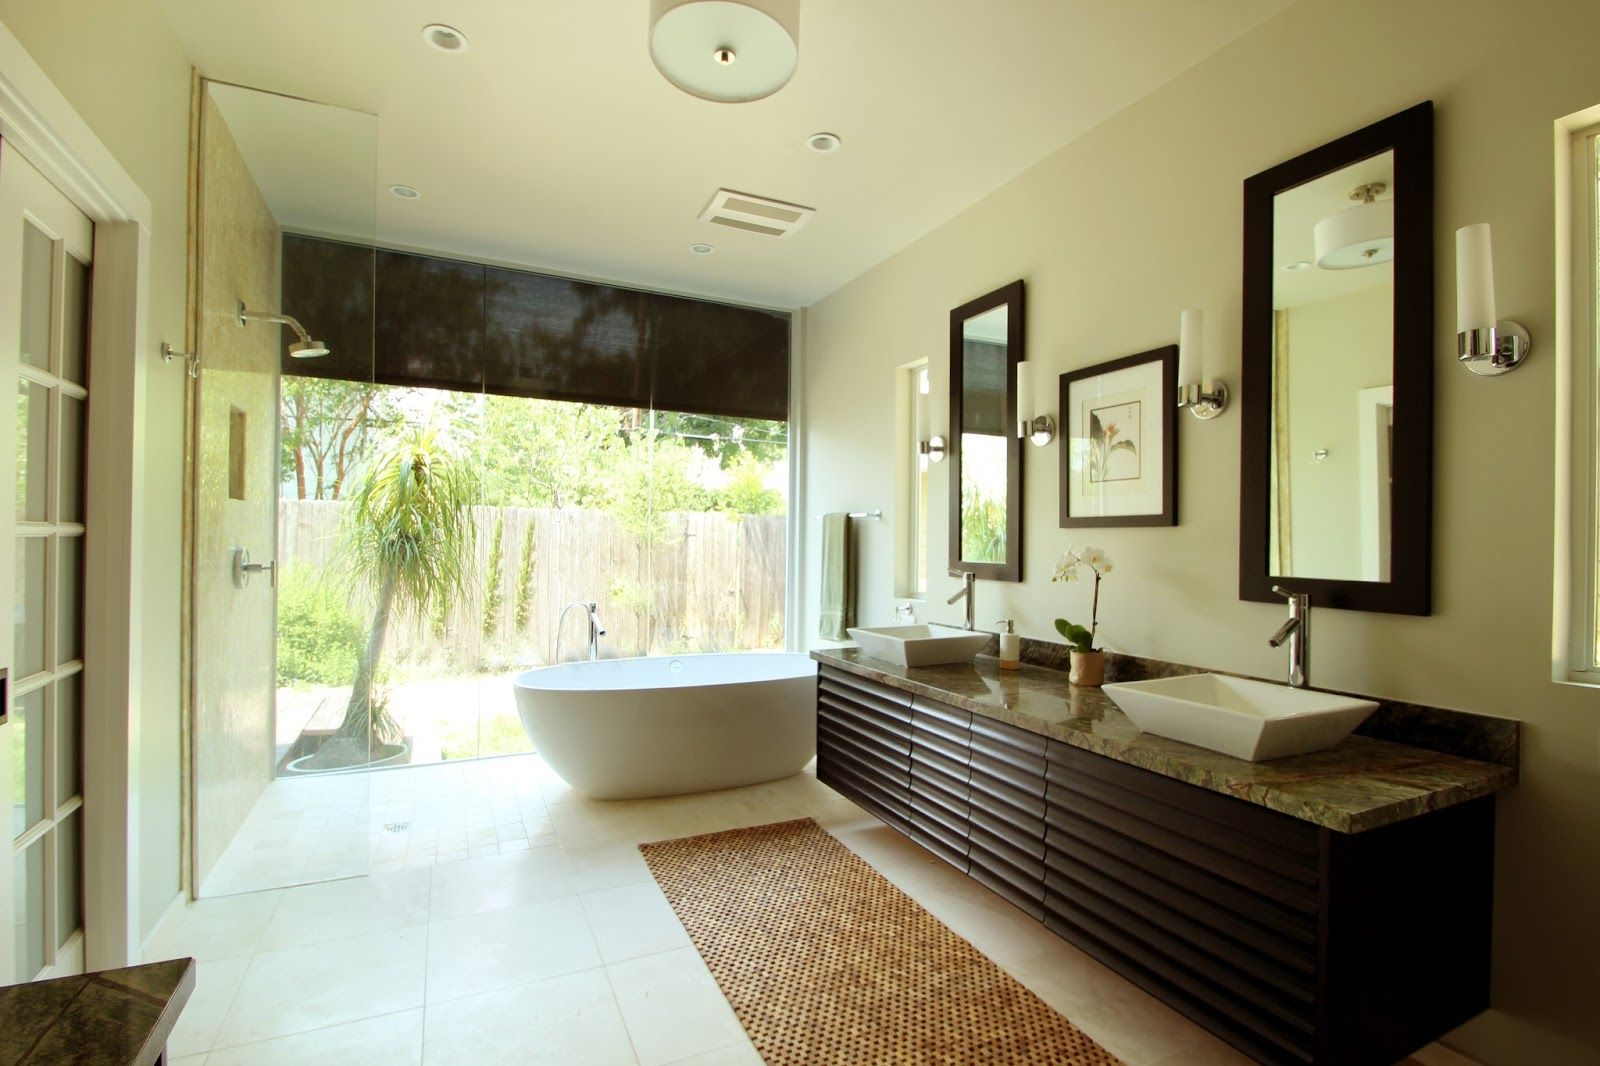 Modern Master Bathroom Designs: Home Ideas For > Modern Master Bathroom